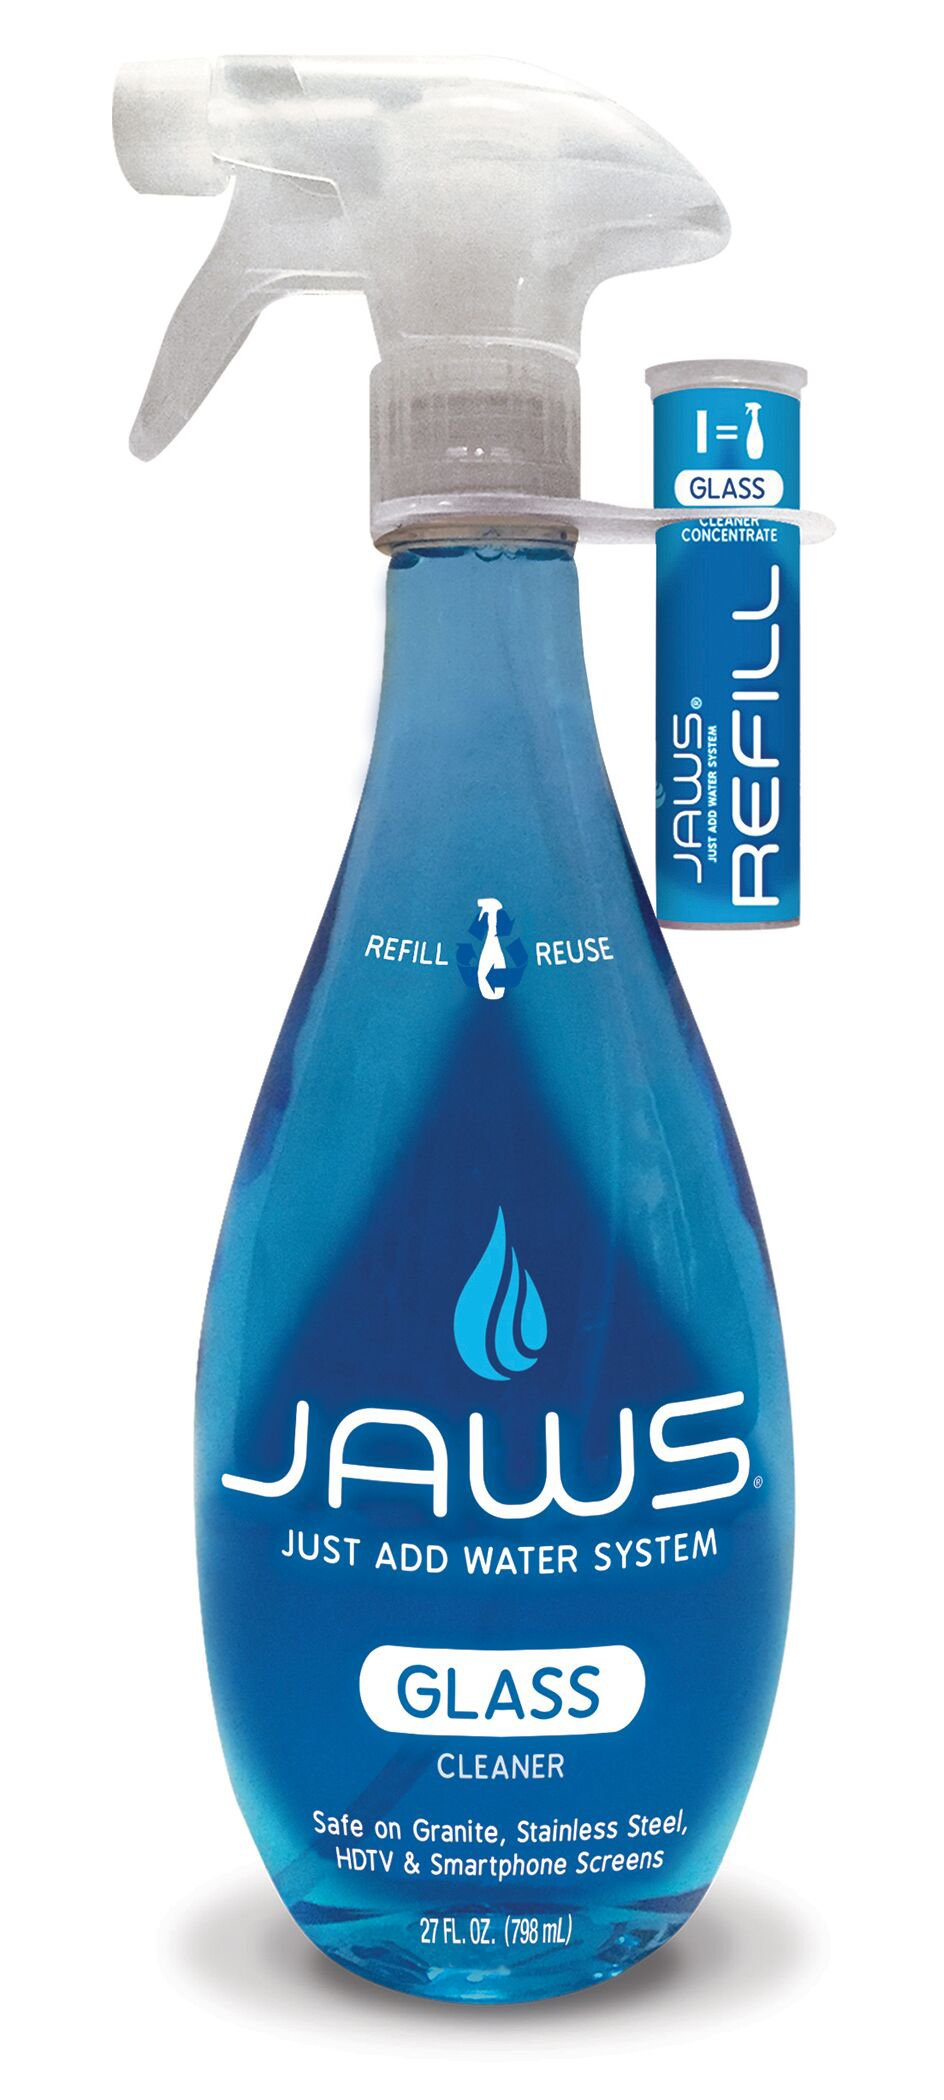 JAWS Glass Cleaner Kit